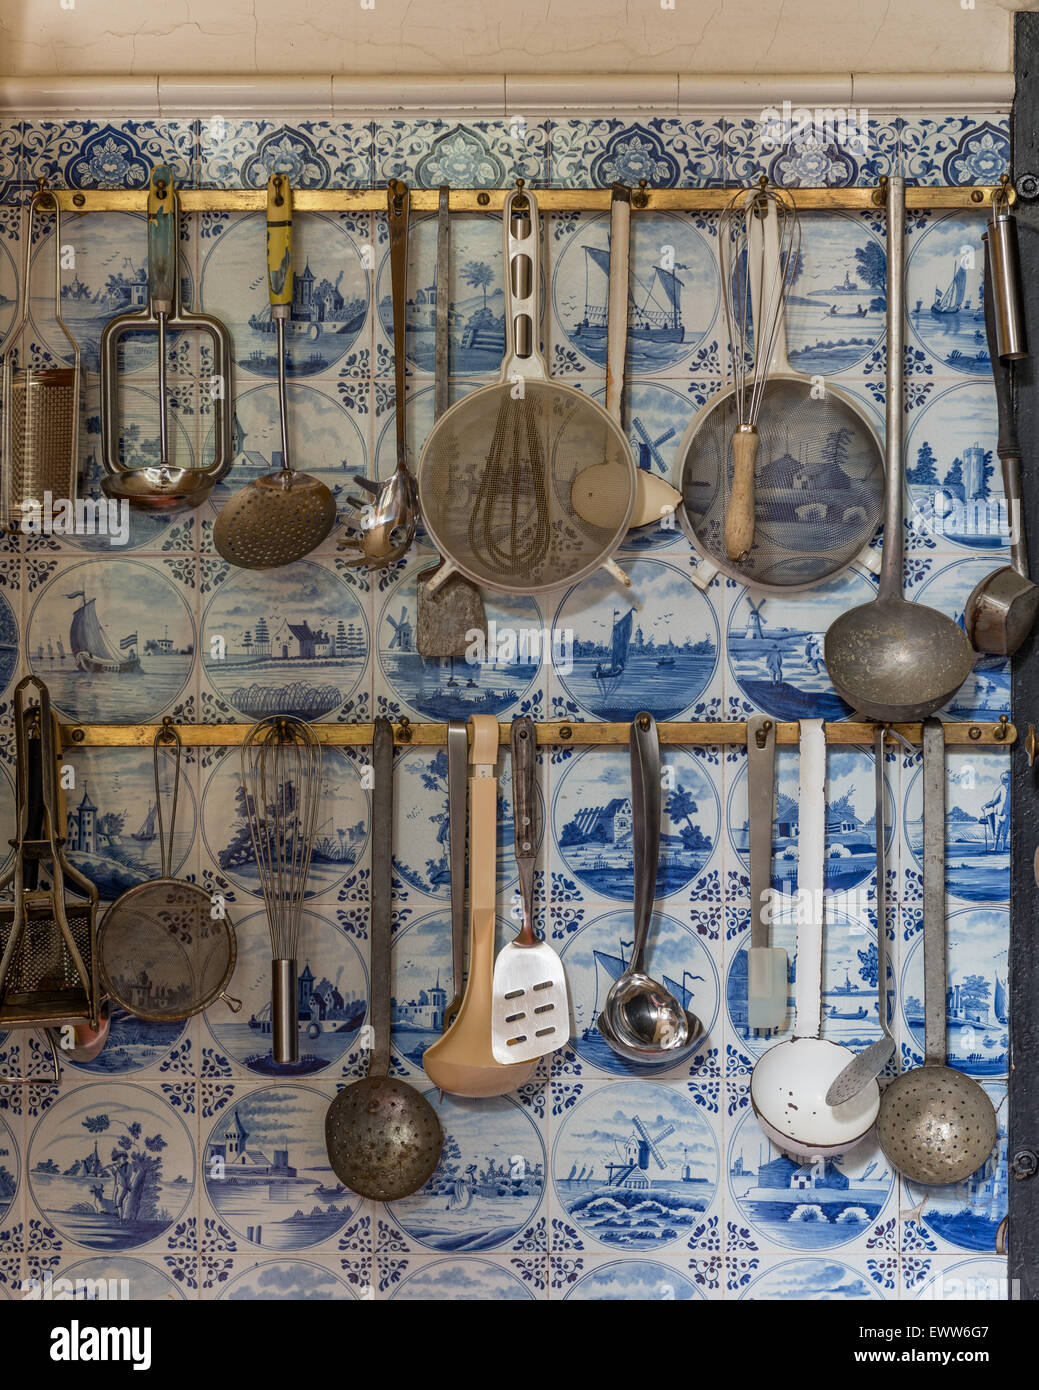 Kitchen utensils hung on rack with delft tiles behind - Stock Image